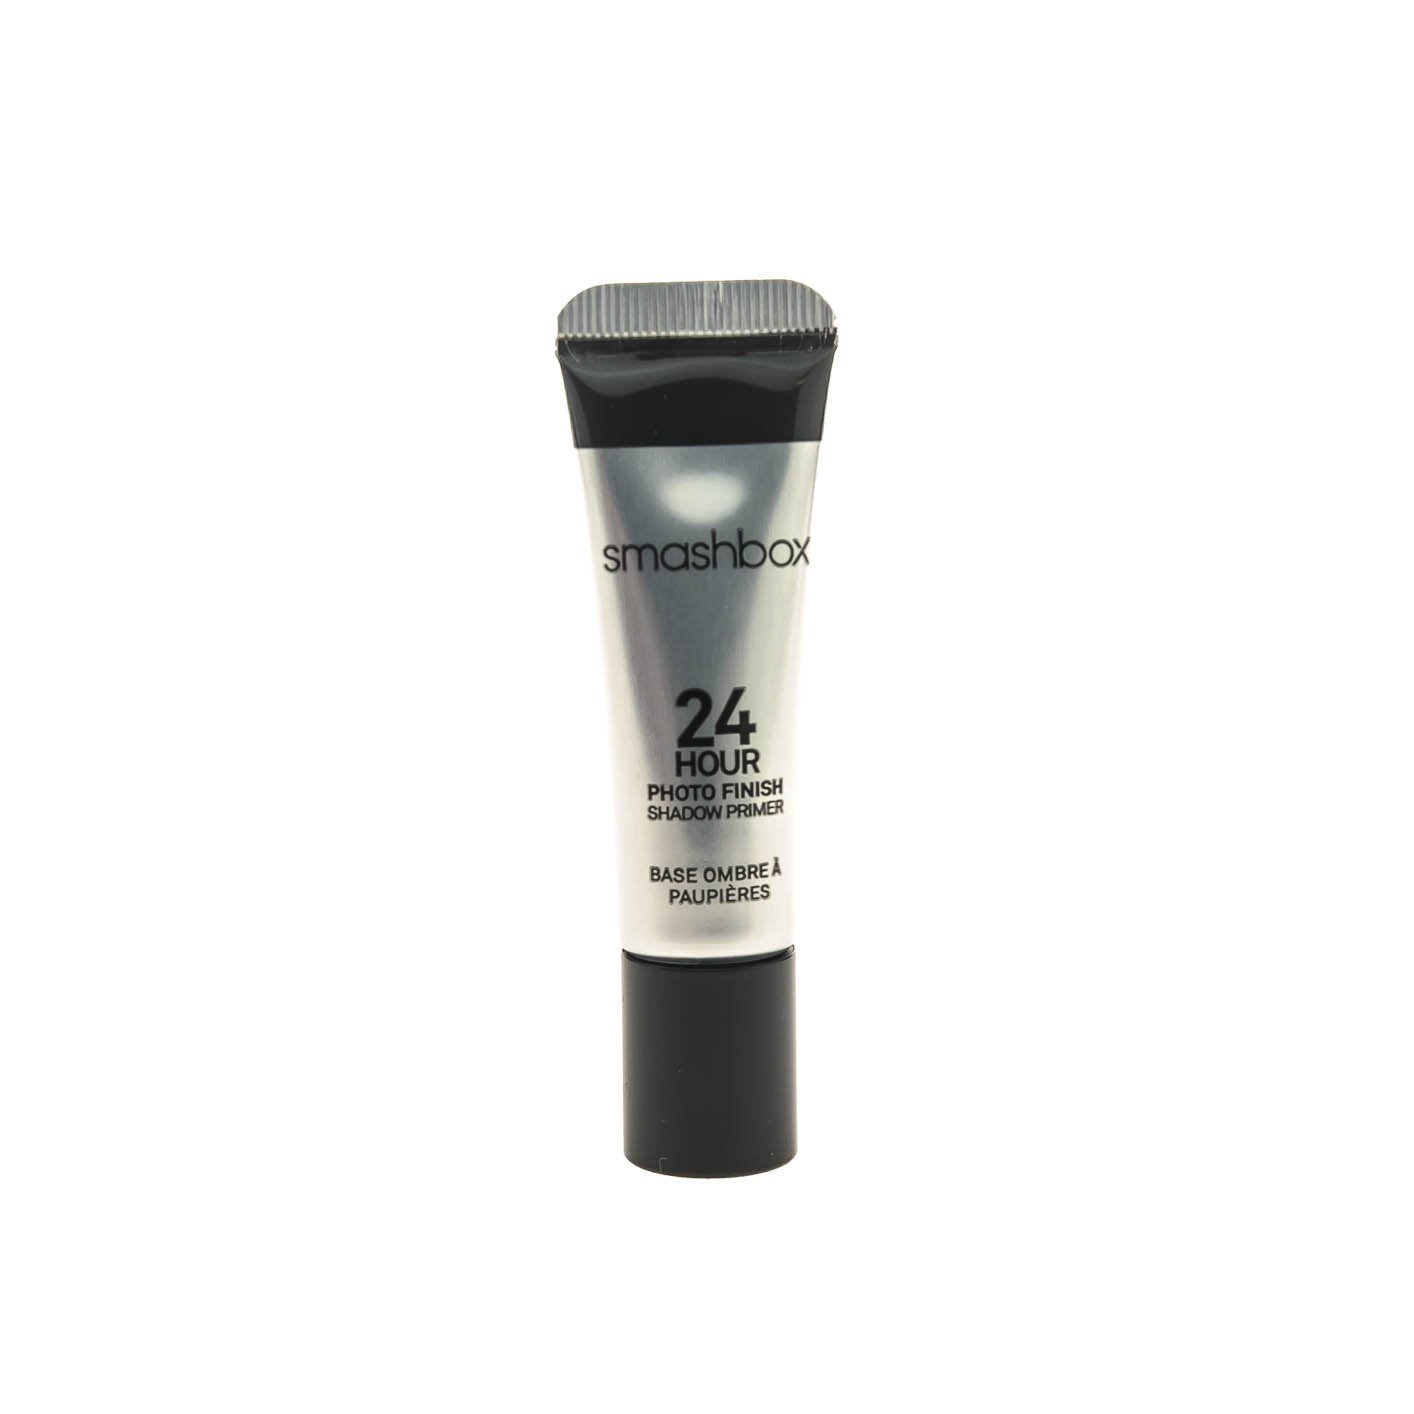 SmashBox Photo Finish Shadow Primer, 0.41 Ounce